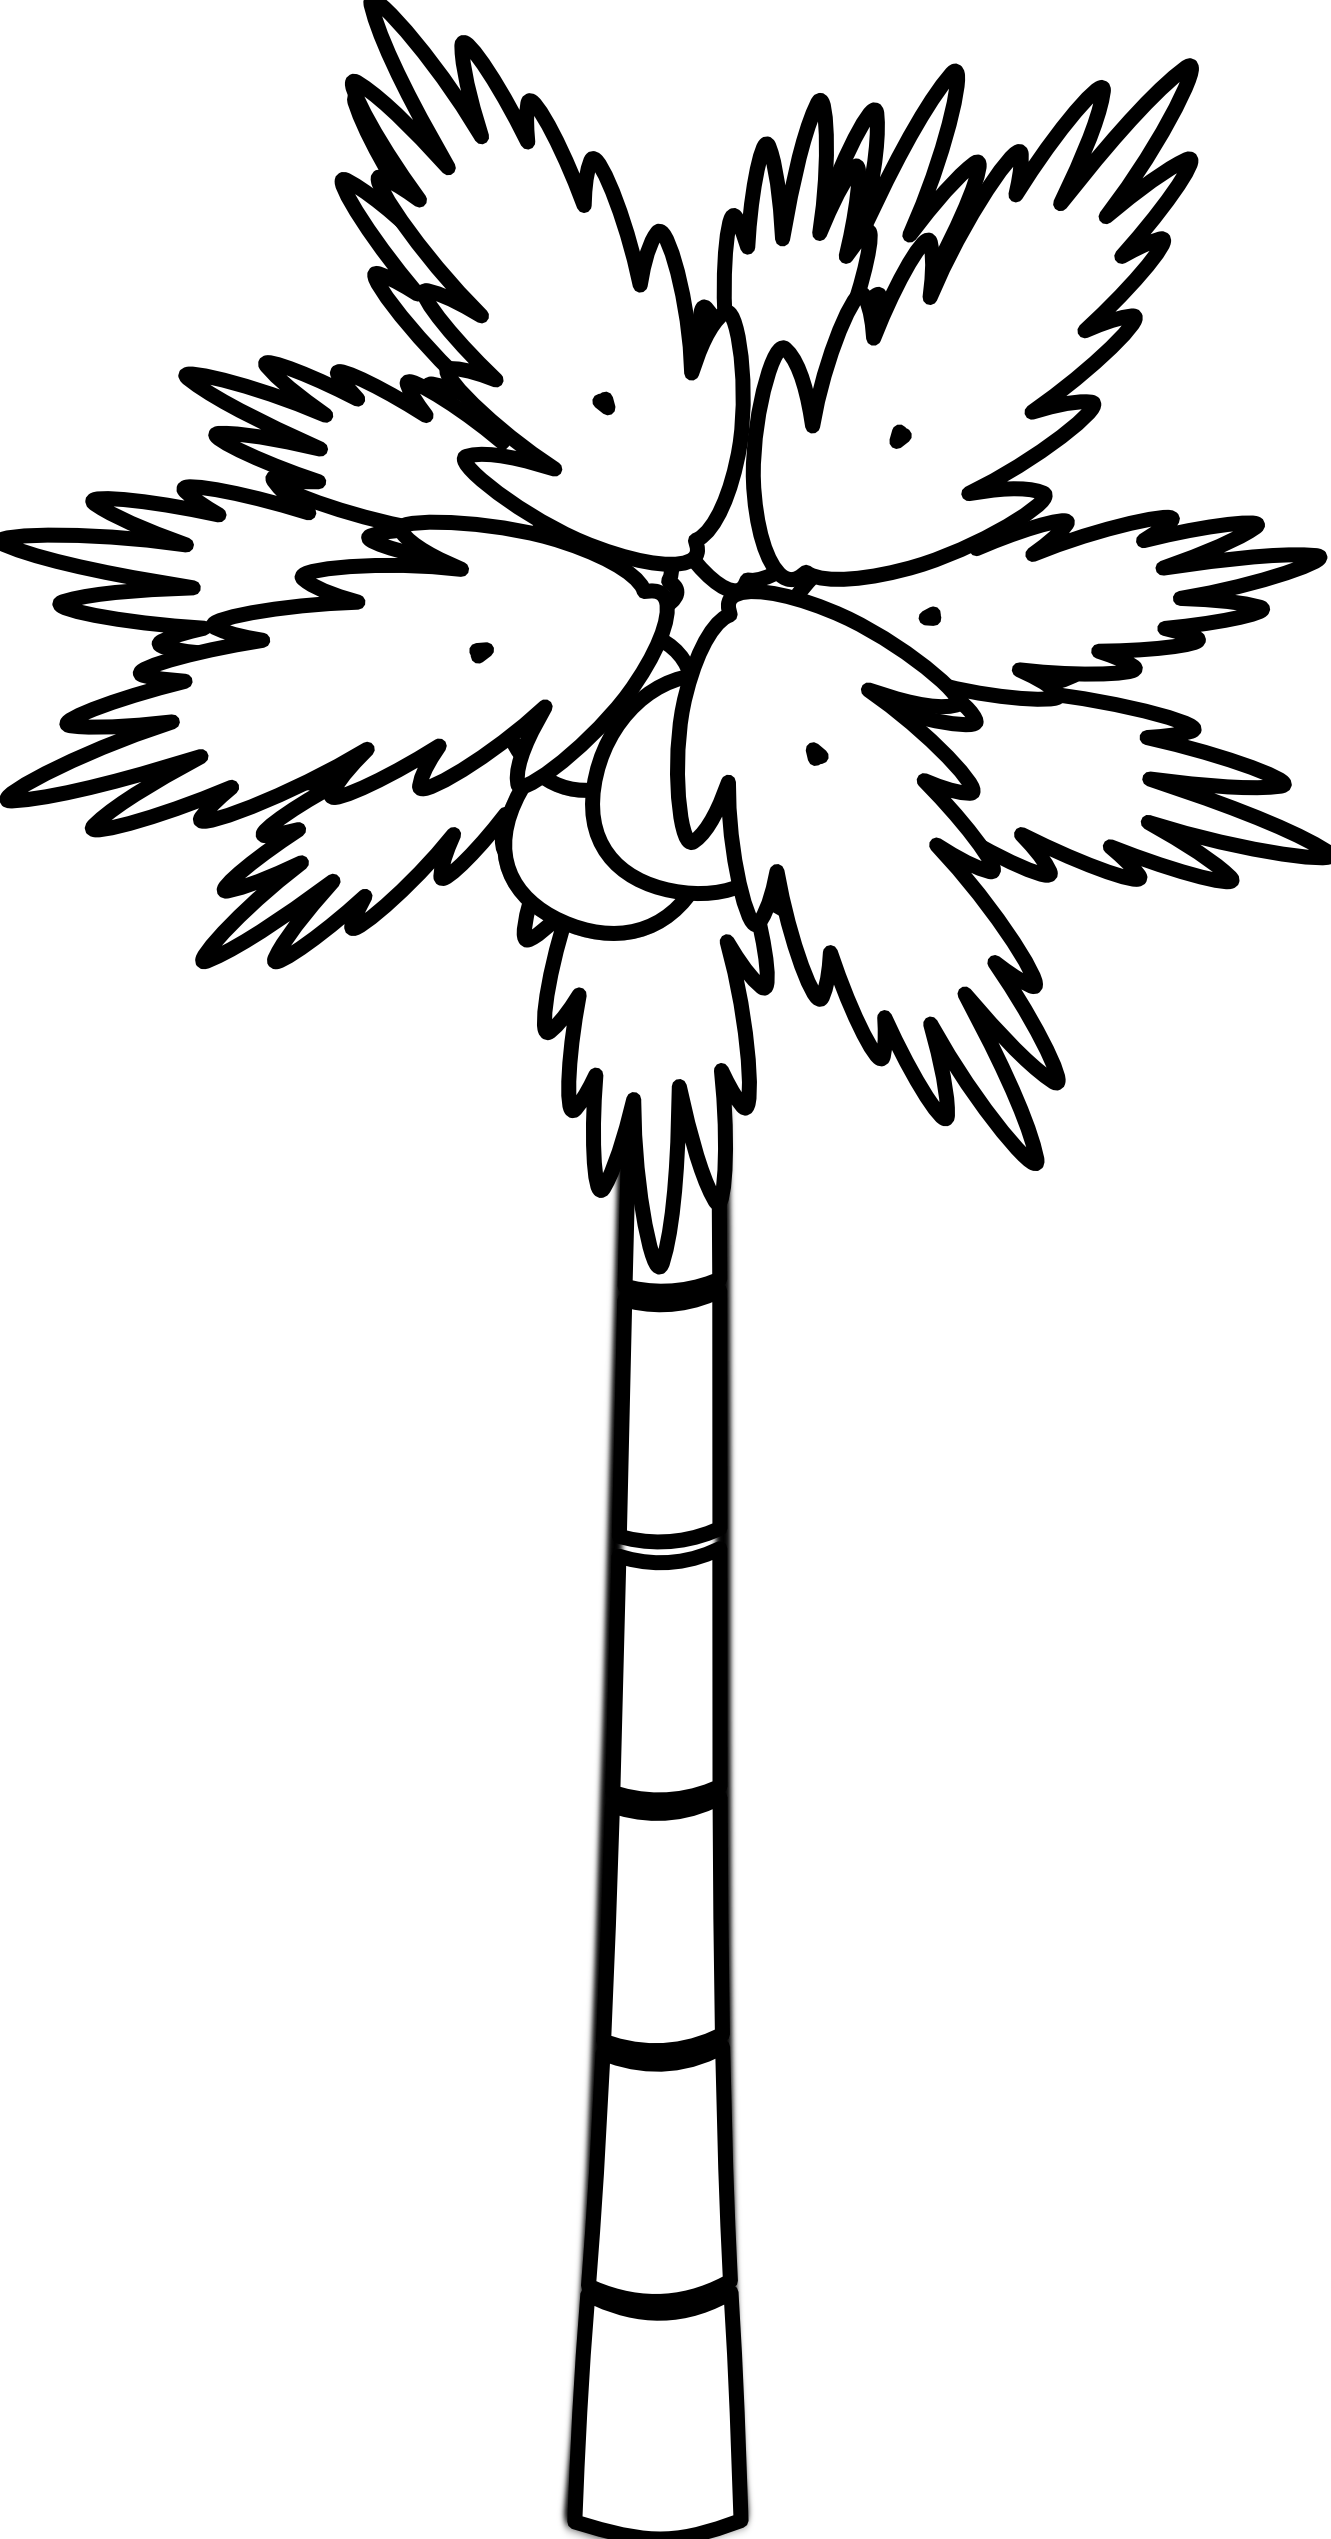 Bark drawing clip art tree. Trees black and white